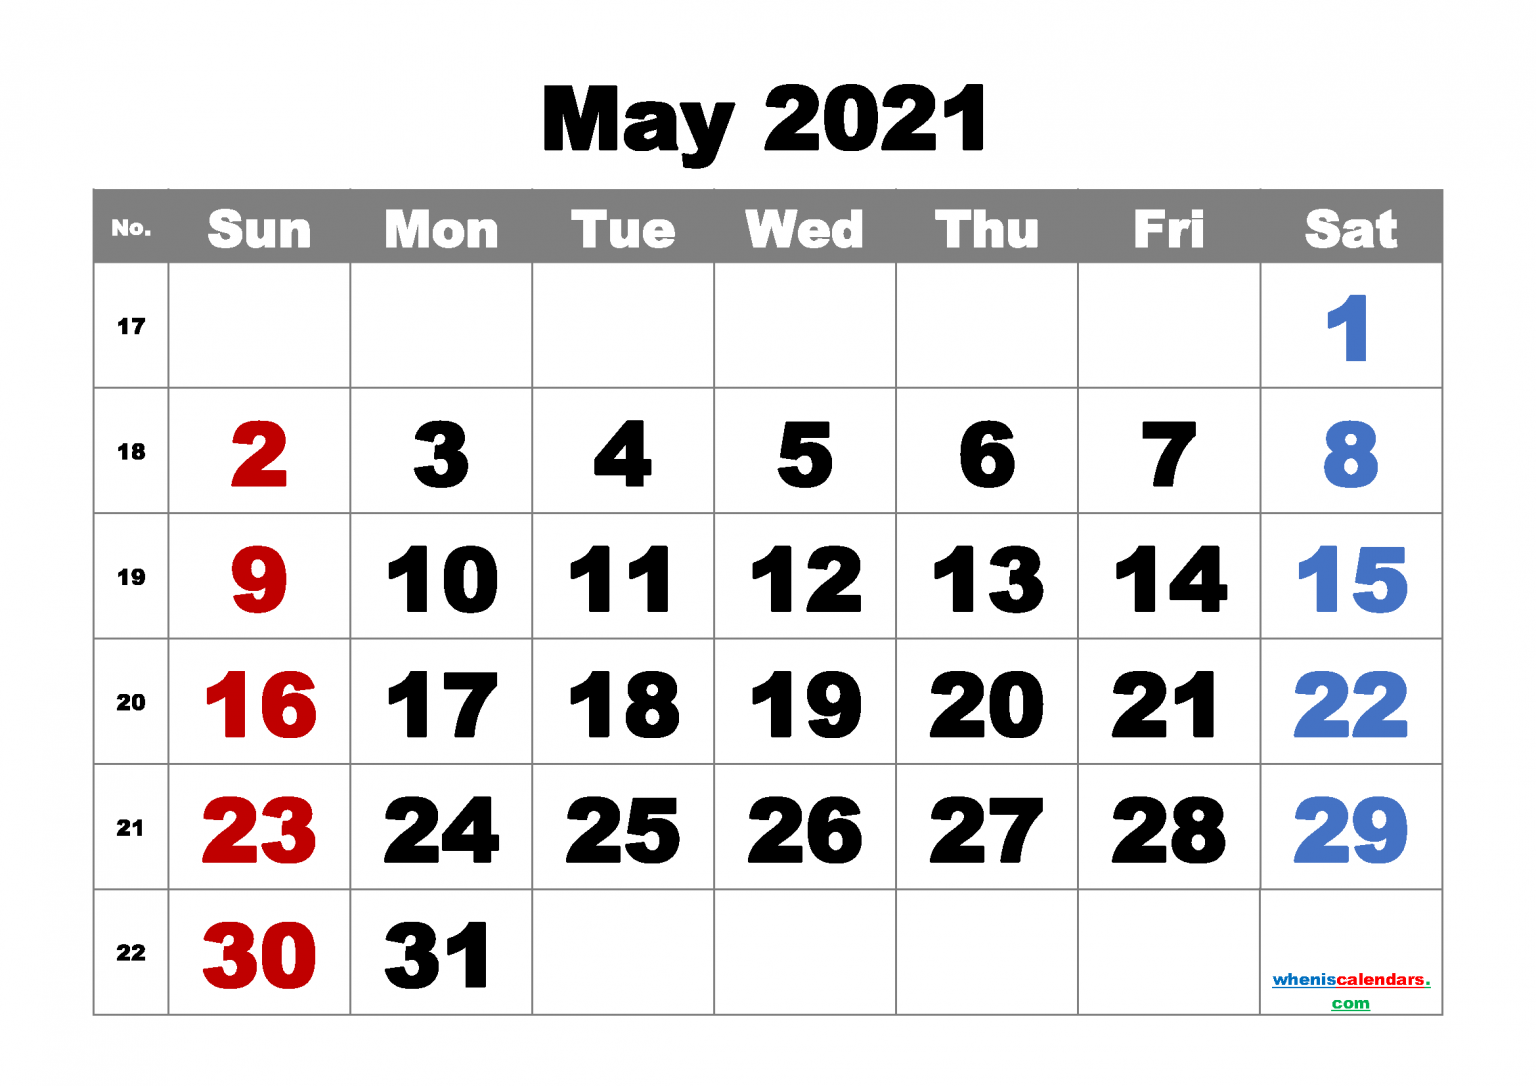 Fillable 2022 Calendar.Free Printable Monthly Calendar 2021 And 2022 In 2021 Calendar Printables Free Printable Calendar Monthly 2021 Calendar